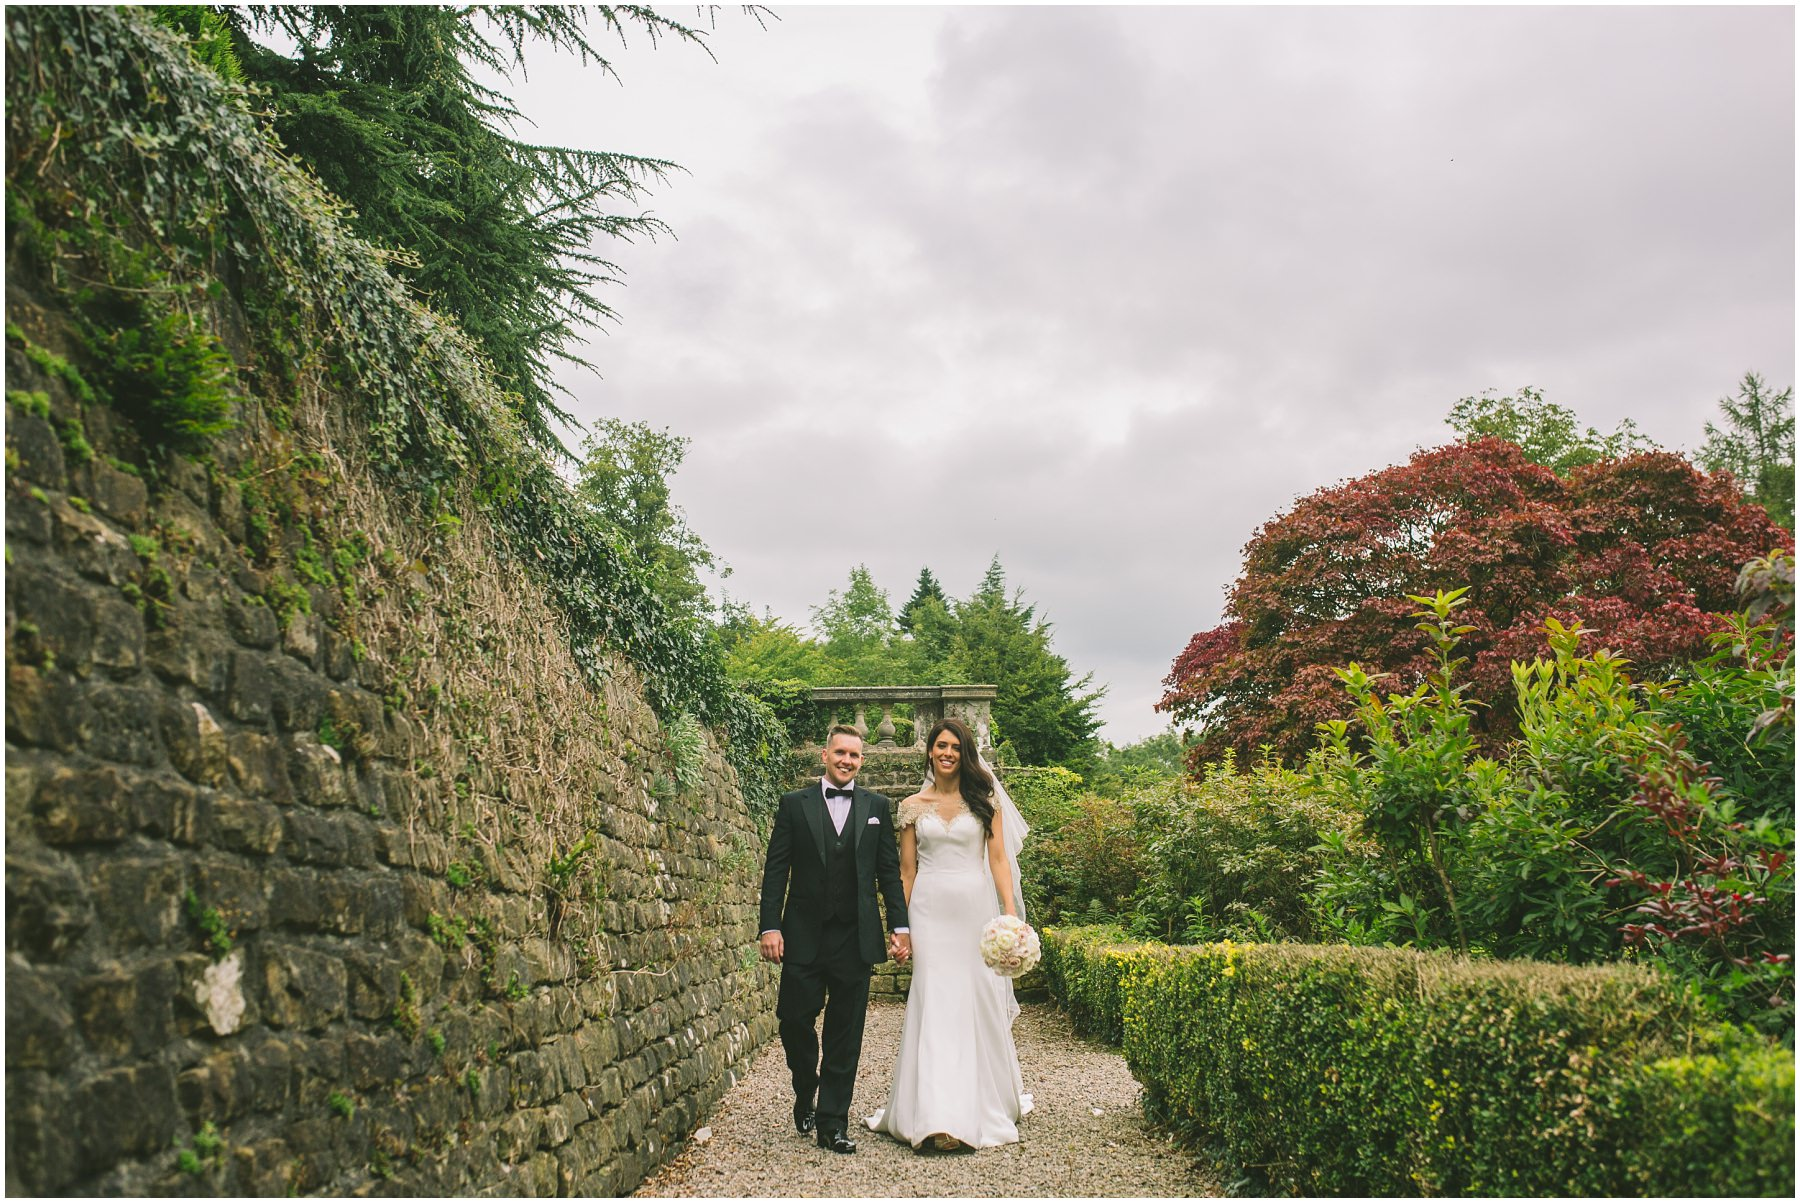 married couple walk through the gardens at Eaves Hall